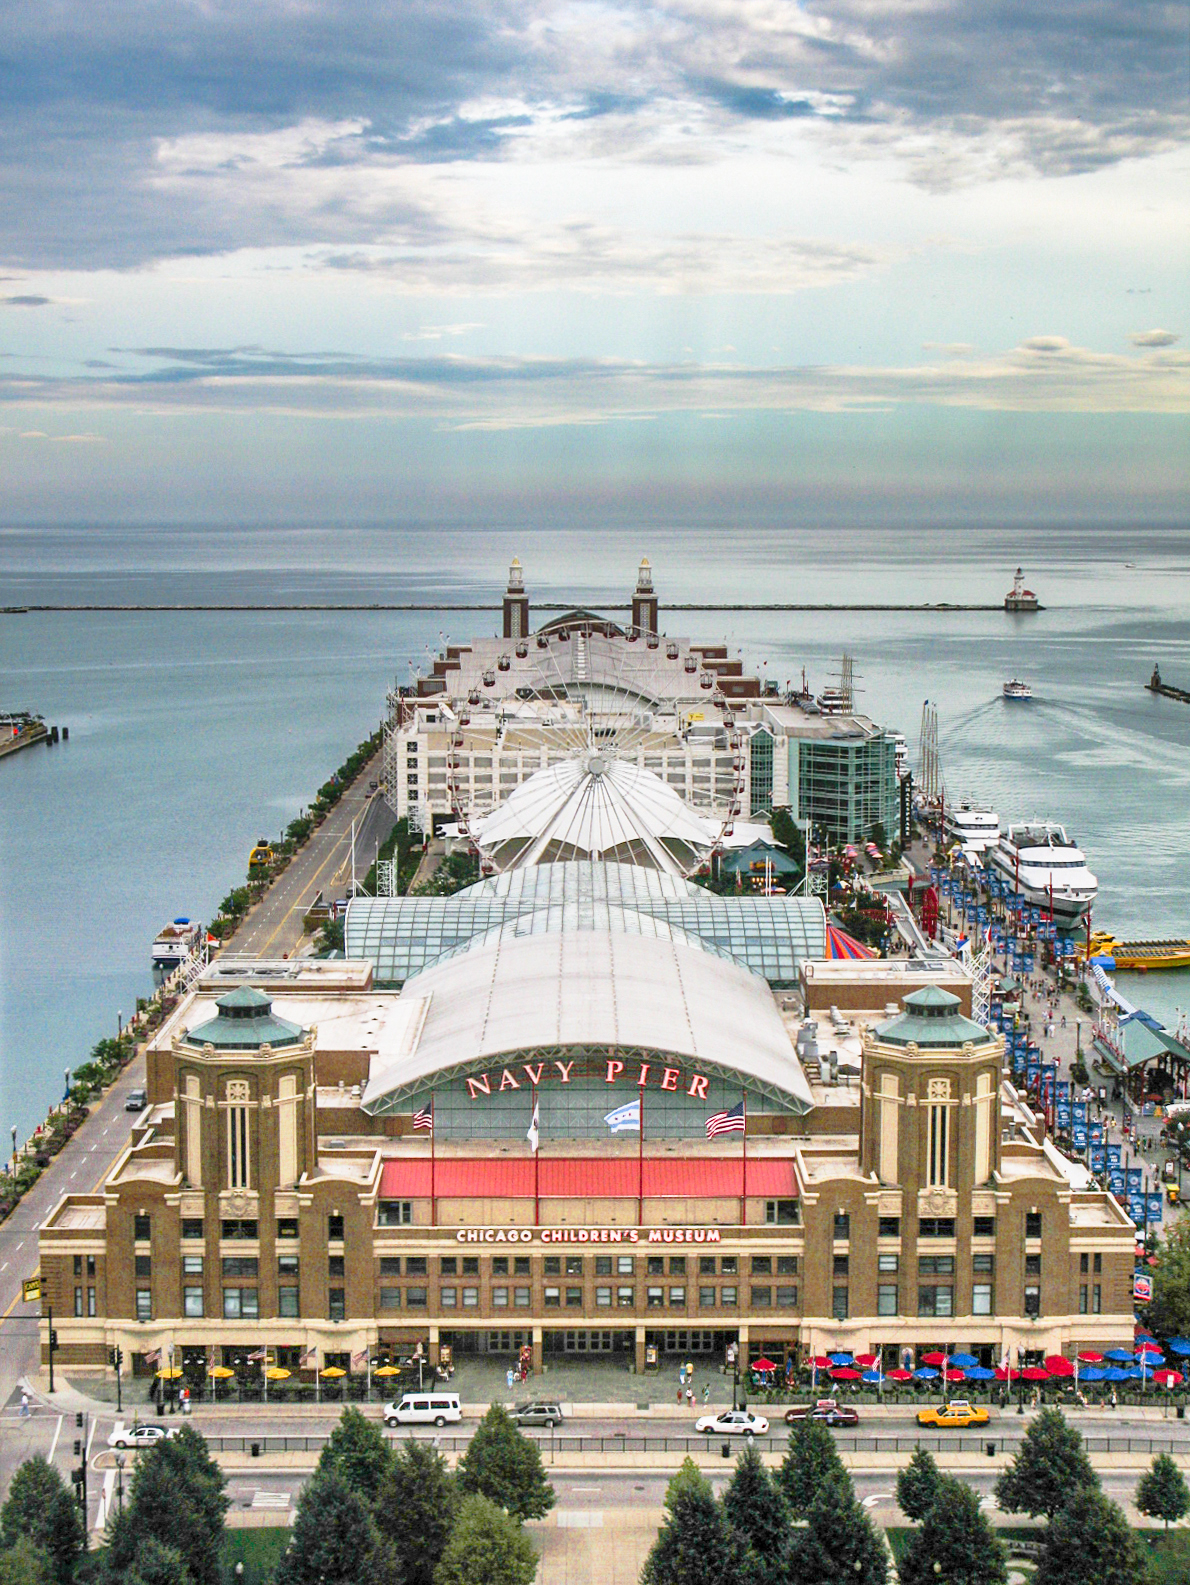 NAVY PIER E. Grand Avenue, Chicago Illinois • PIER. Navy Pier is one of Chicago's top attractions, welcoming in excess of million visitors a year.